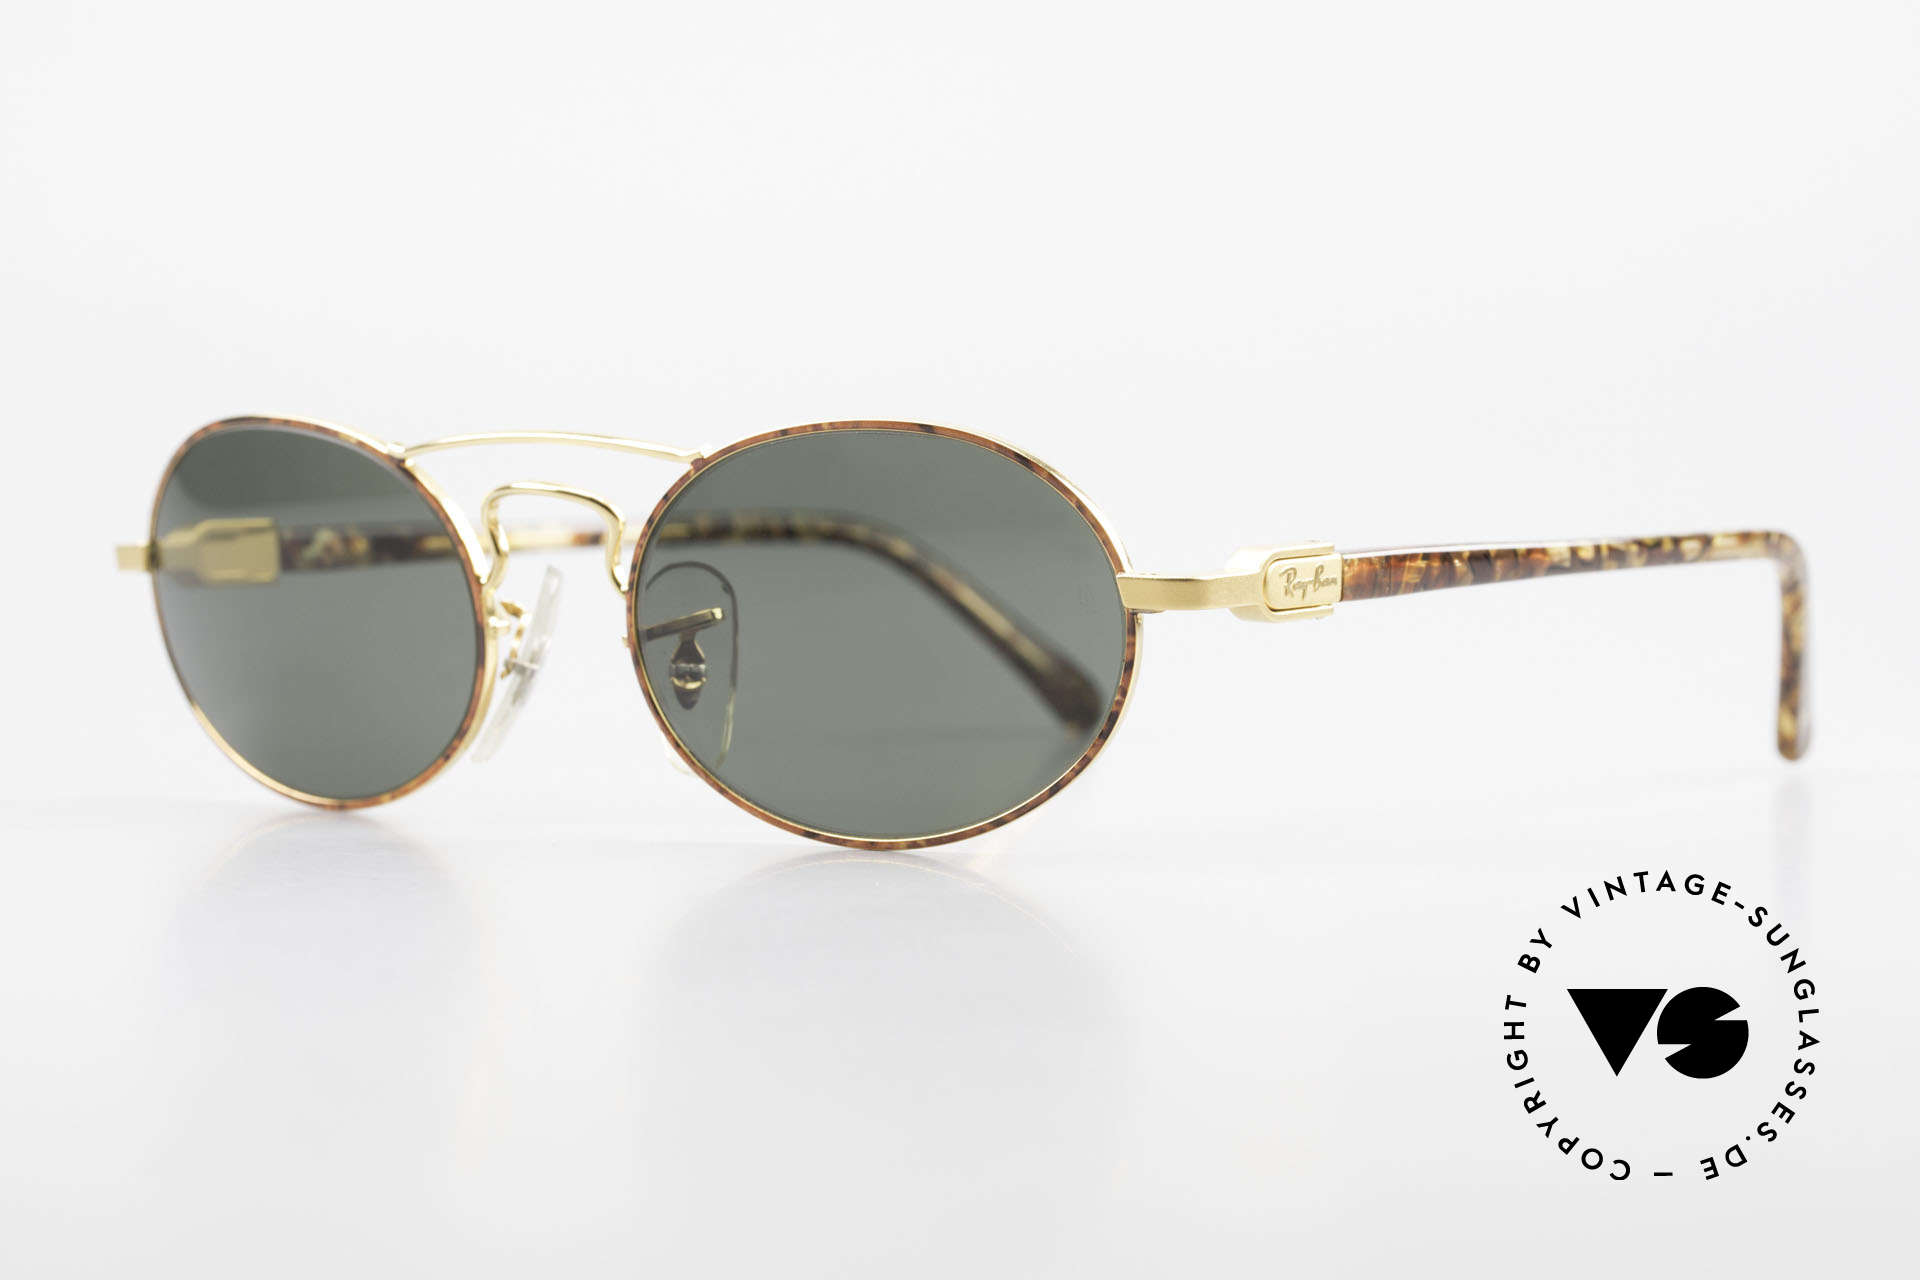 Ray Ban Chaos Oval 90's B&L USA Ray-Ban W2008, finest quality from RAY-BAN, B&L - made in the USA, Made for Men and Women